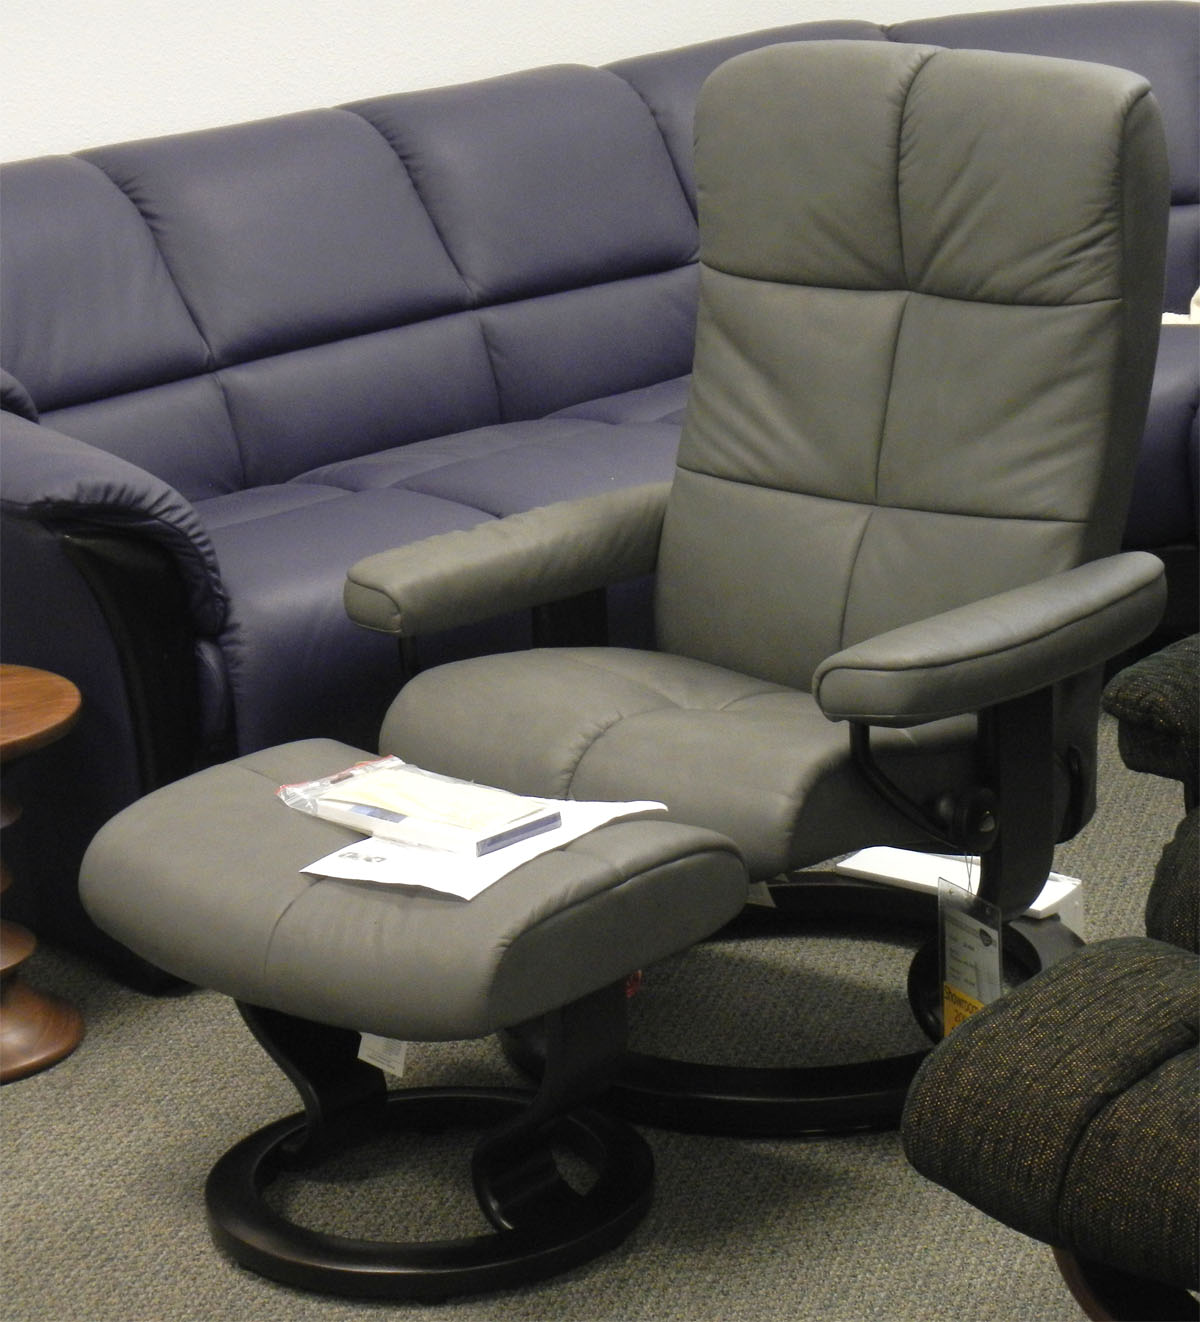 Stressless Recliners Chairs Ekornes Stressless Oxford